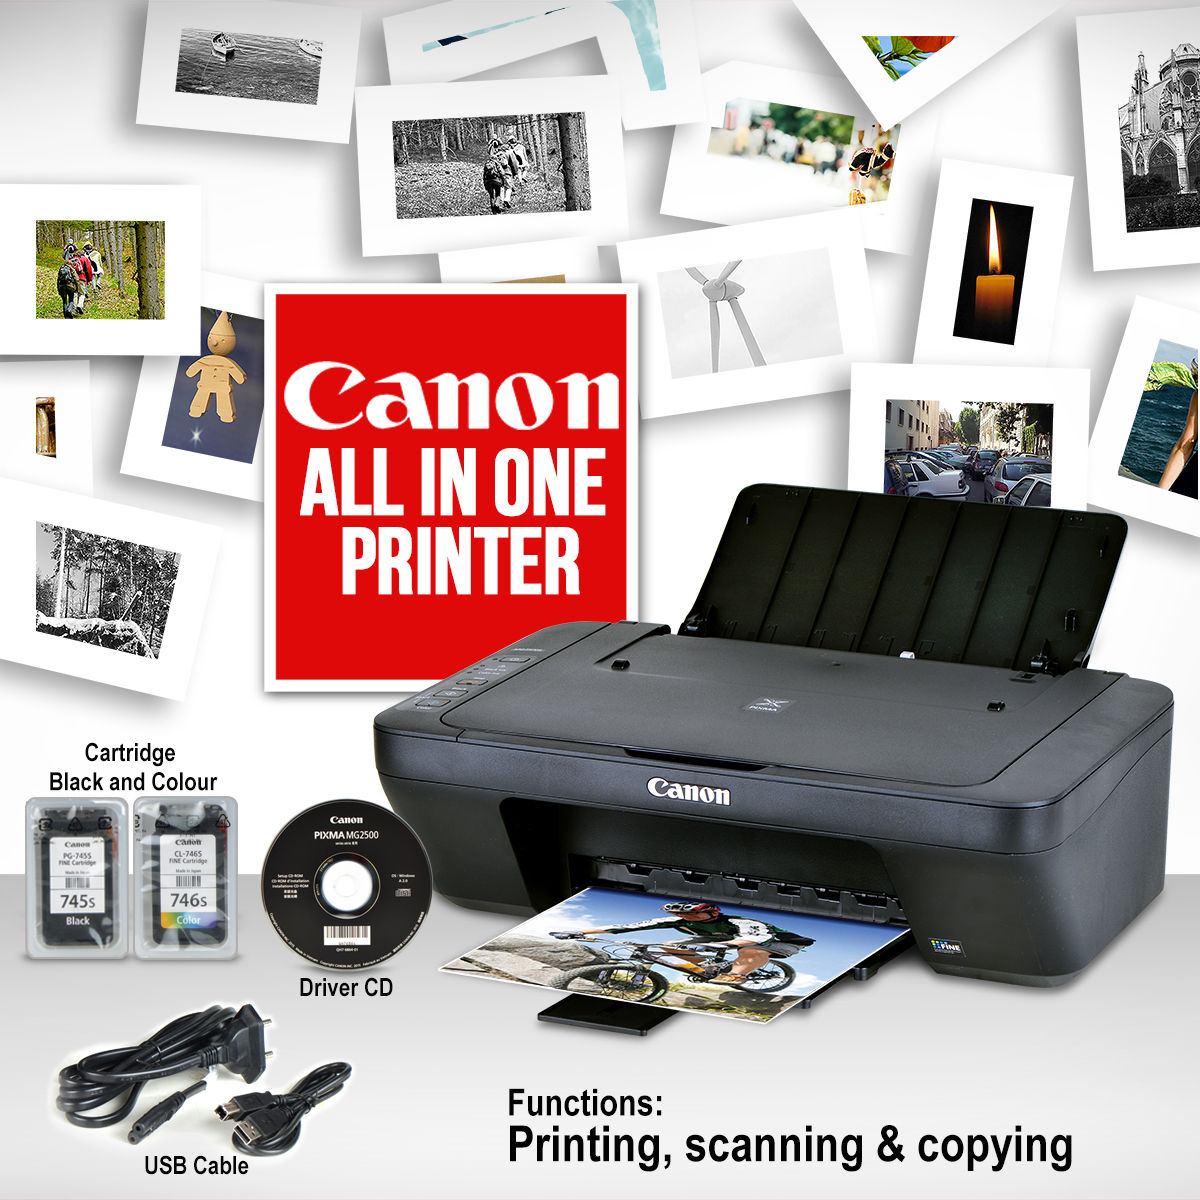 Buy canon all in one printer online at best price in india on buy canon all in one printer online at best price in india on naaptol reheart Images